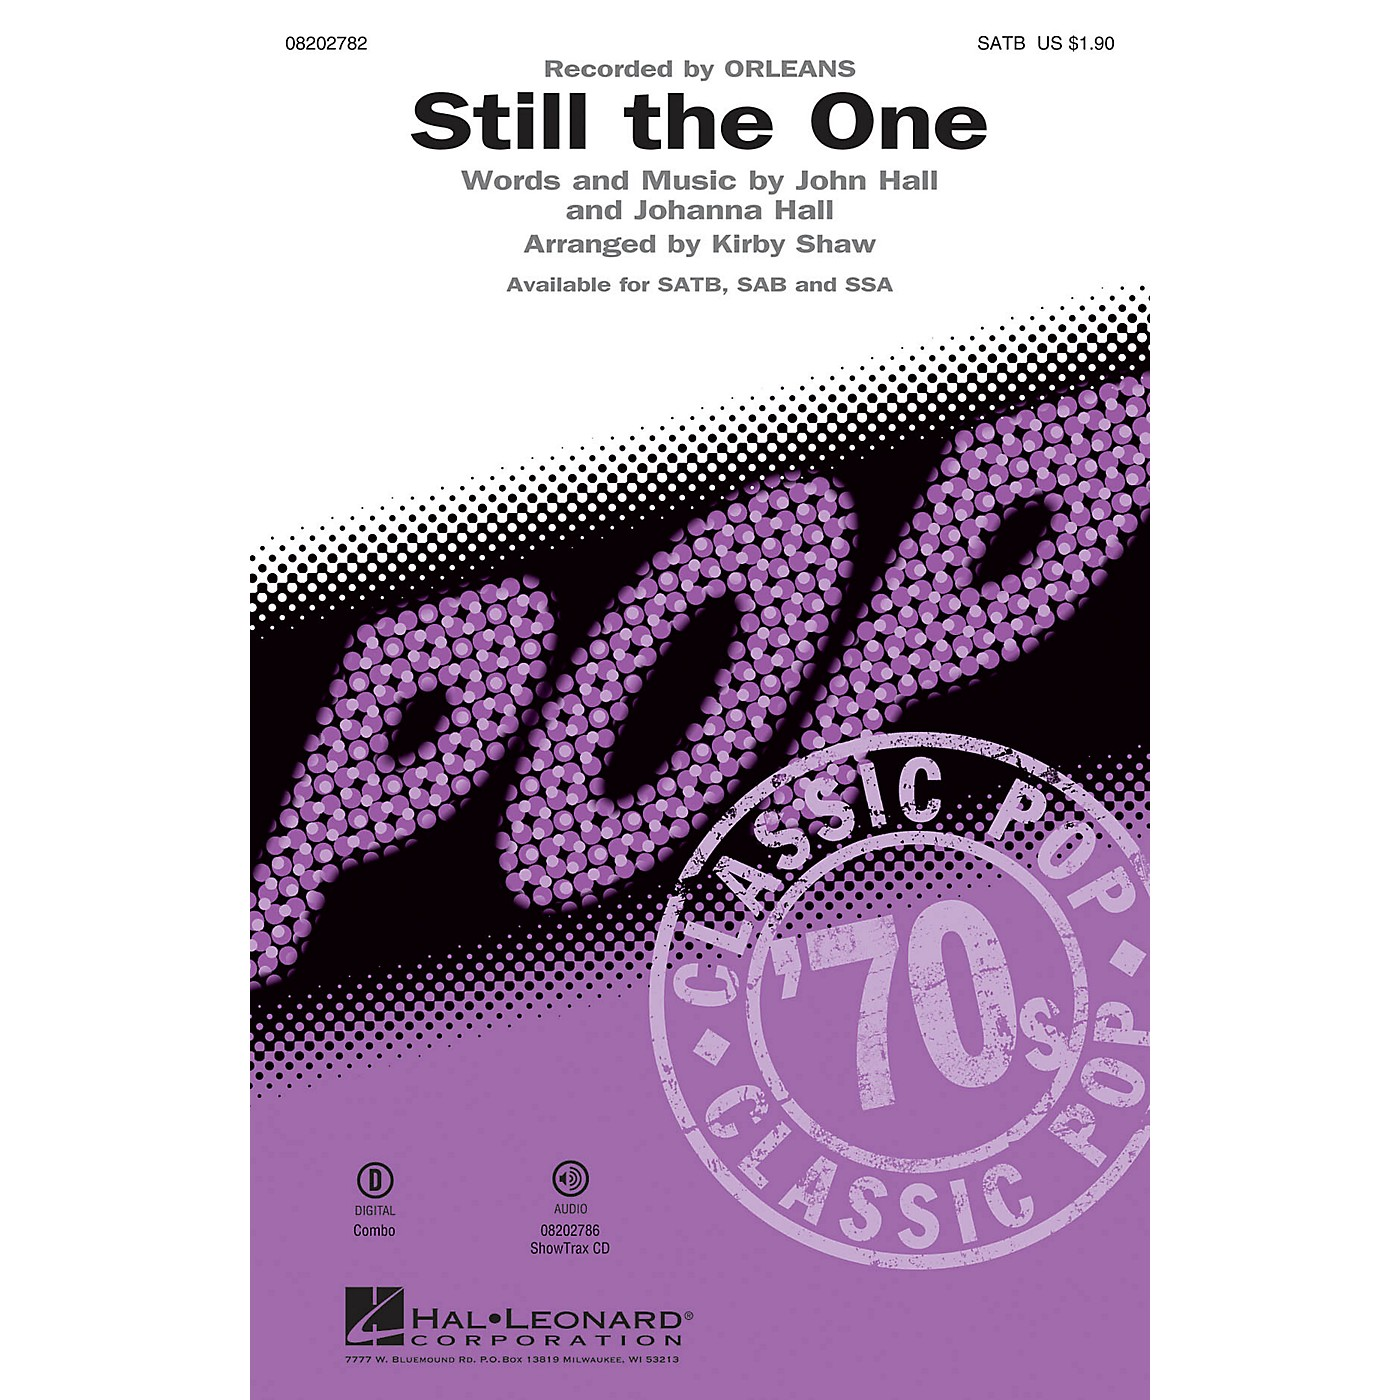 Hal Leonard Still the One ShowTrax CD by Orleans Arranged by Kirby Shaw thumbnail